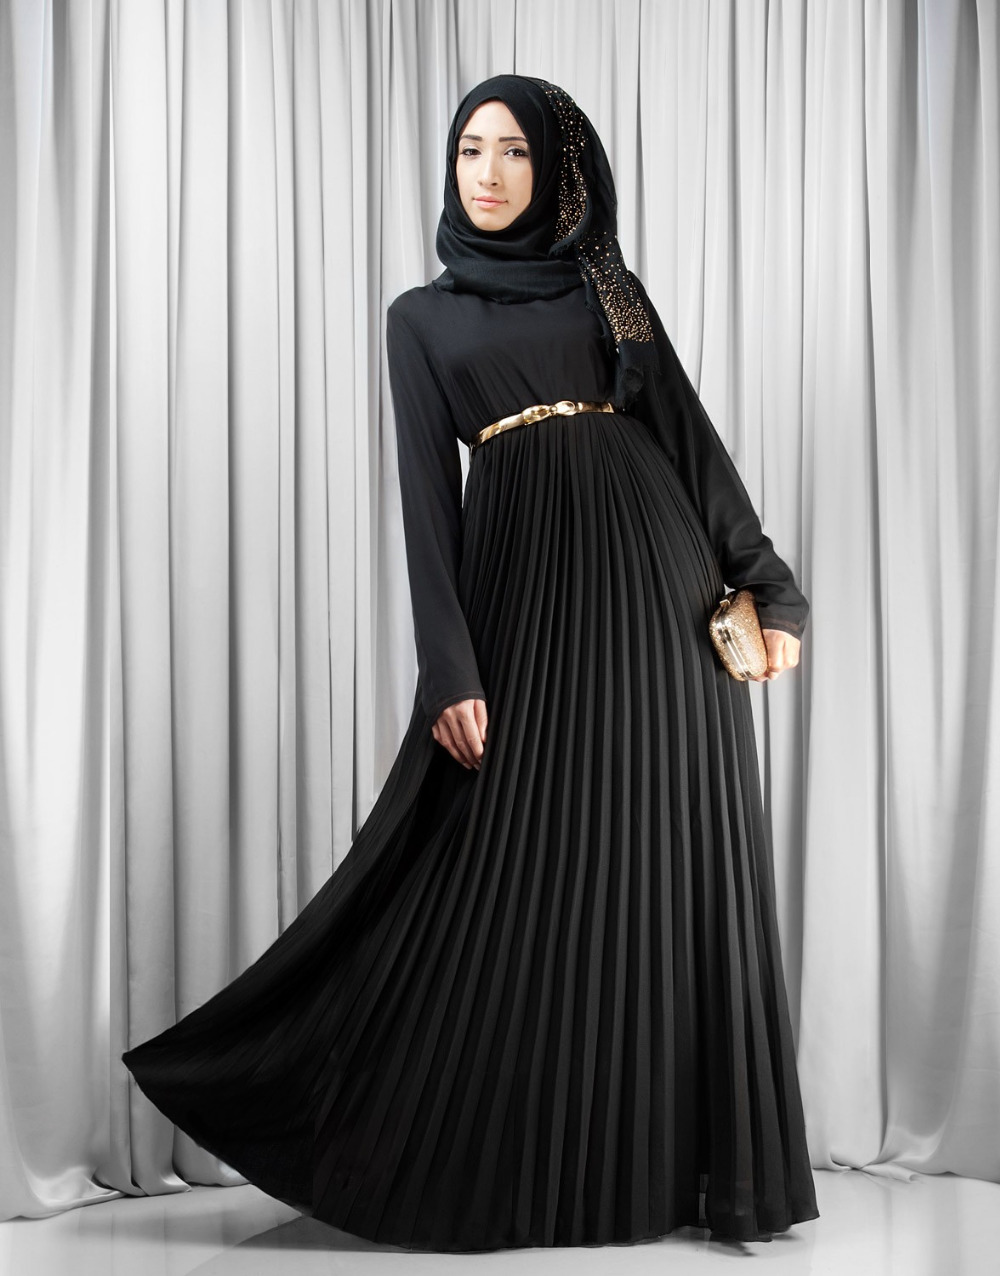 Ws329 Turkish Women Long Dress Muslim Abaya Islamic Clothing Buy Muslim Women Long Dress Abaya